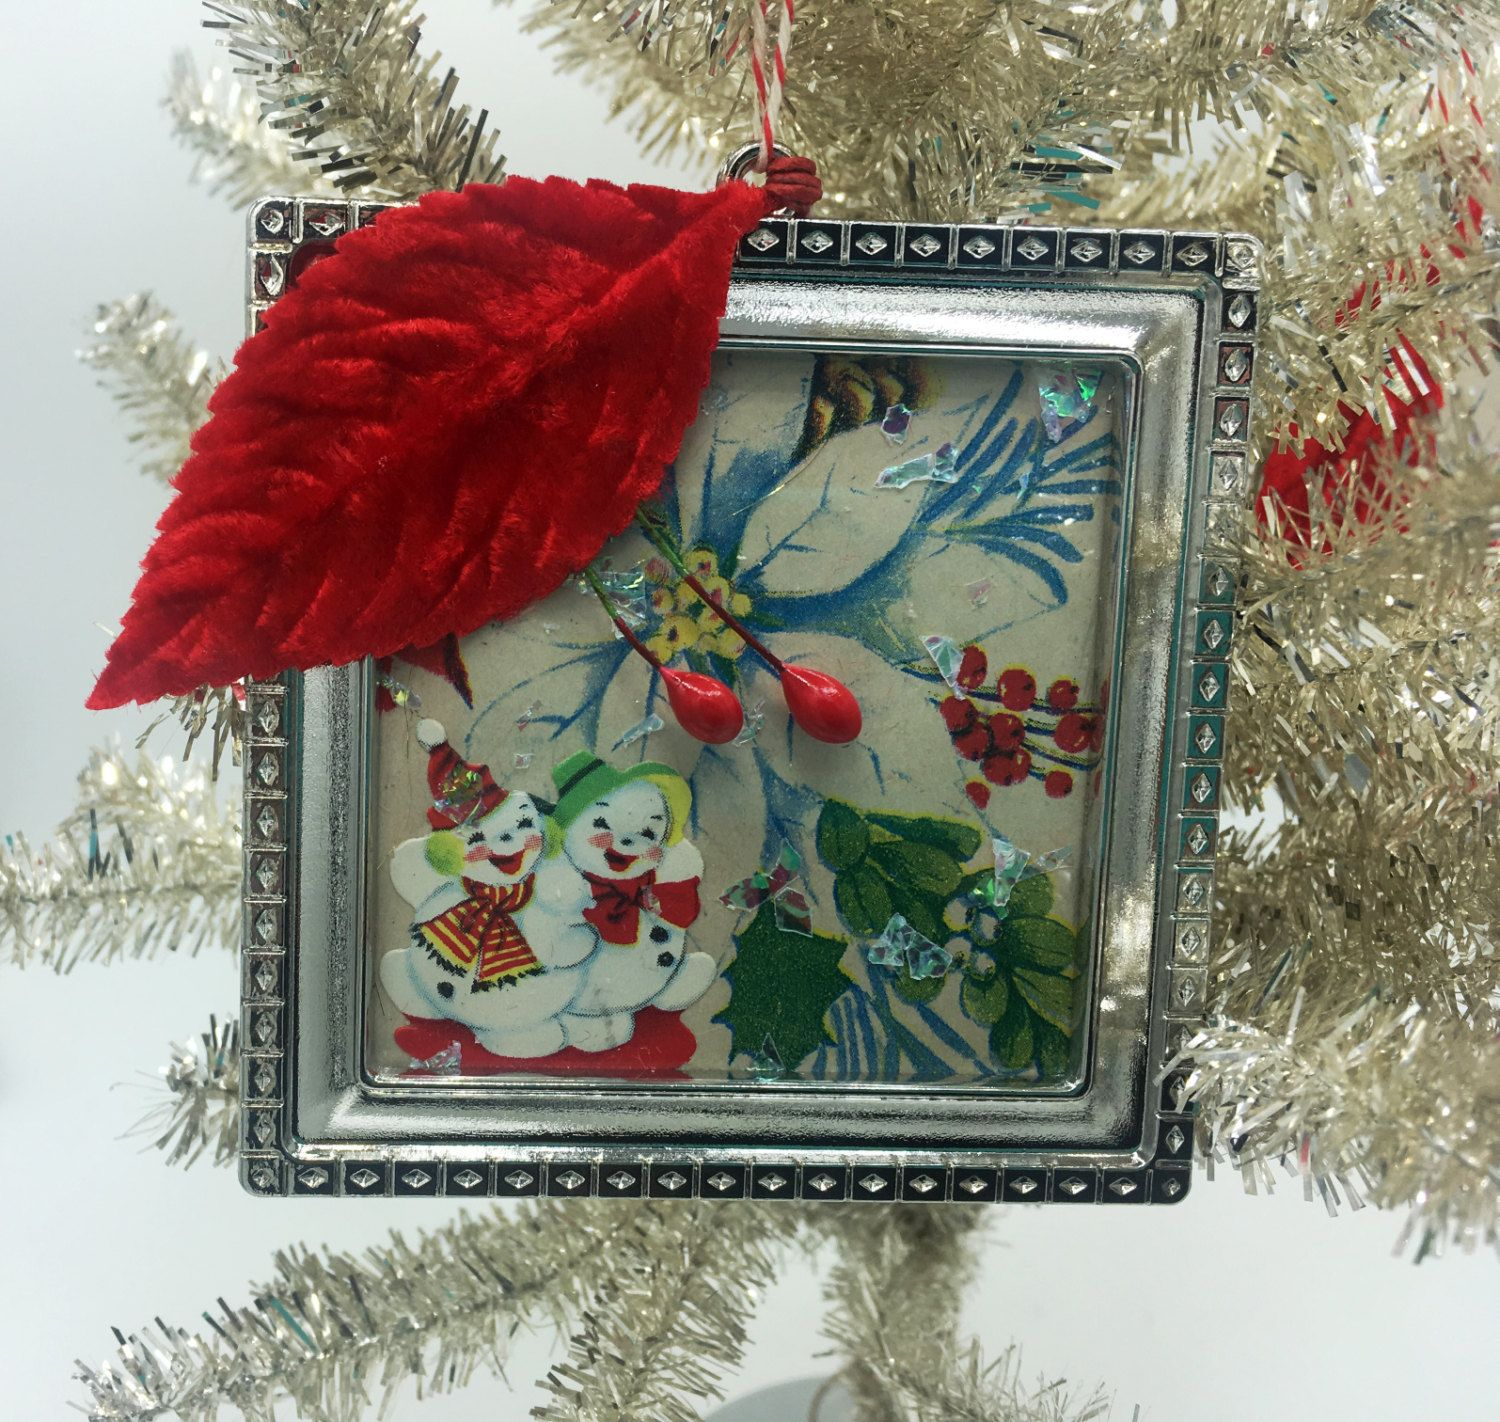 1950s vintage style christmas ornament by lapetitegrain on etsy